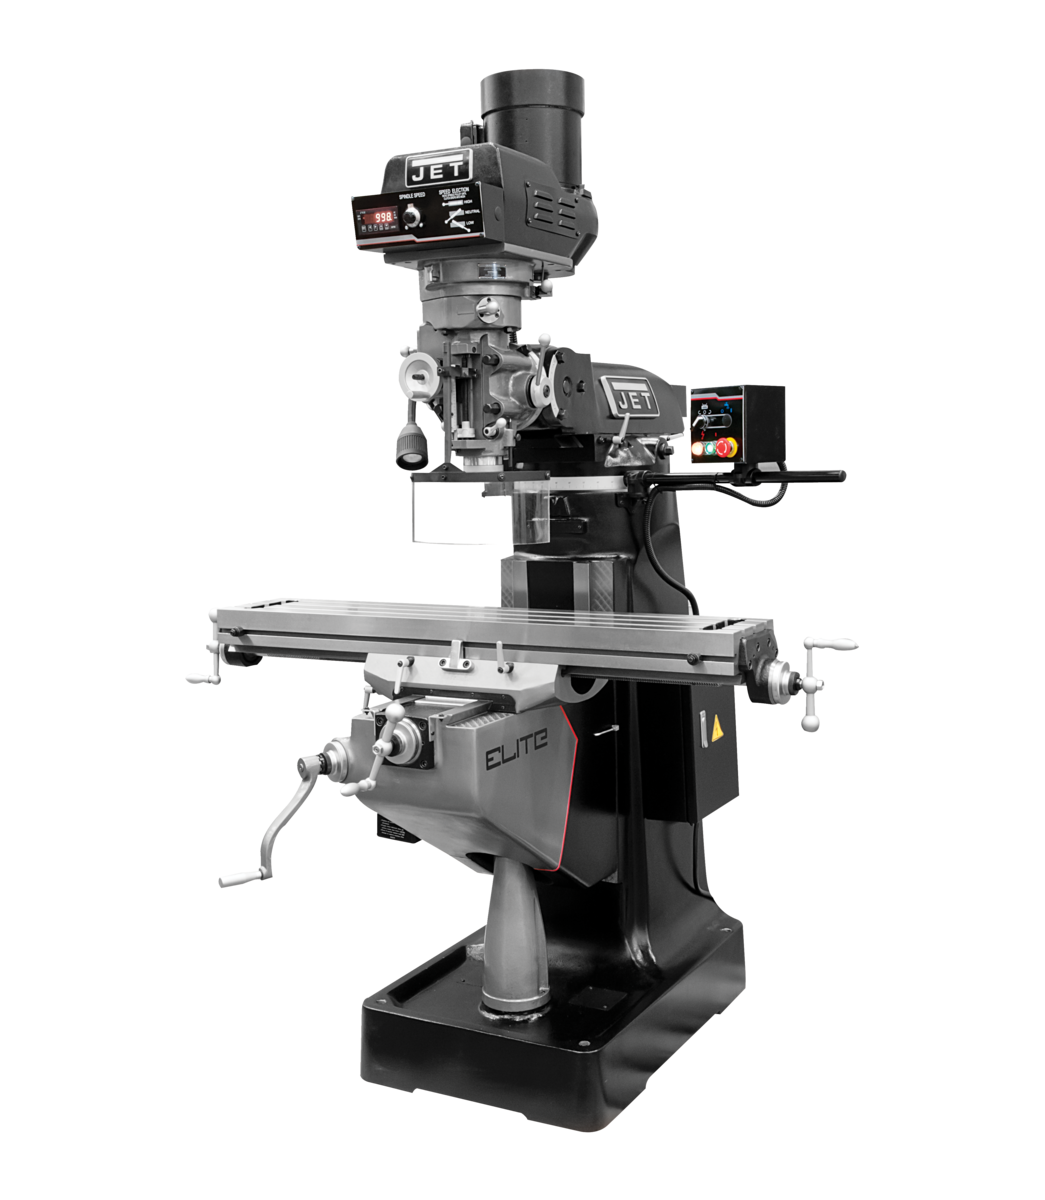 EVS-949 Mill with 3-Axis ACU-RITE 203 (Quill) DRO